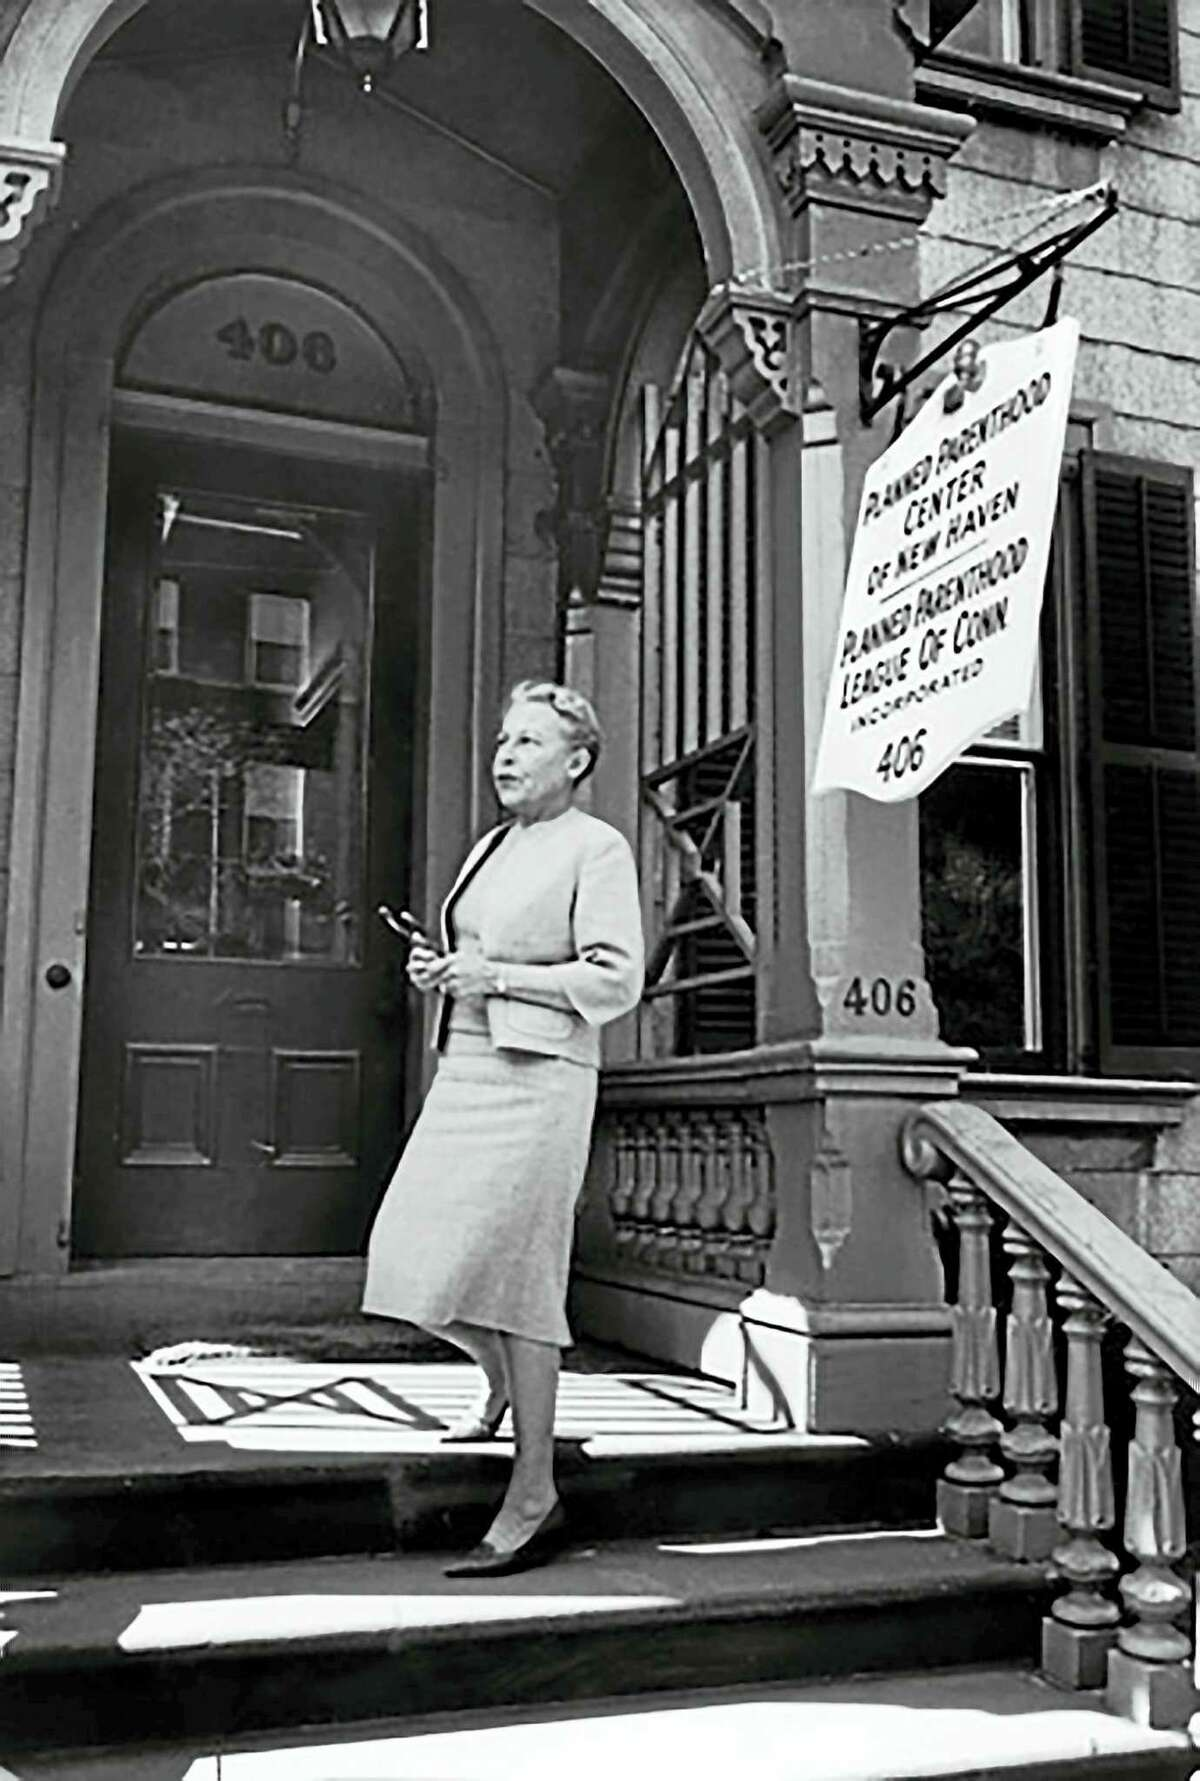 COURTESY PLANNED PARENTHOOD OF SOUTHERN NEW ENGLAND Estelle Griswold's defiance of the Connecticut law banning birth control led to a landmark 1965 Supreme Court decision.